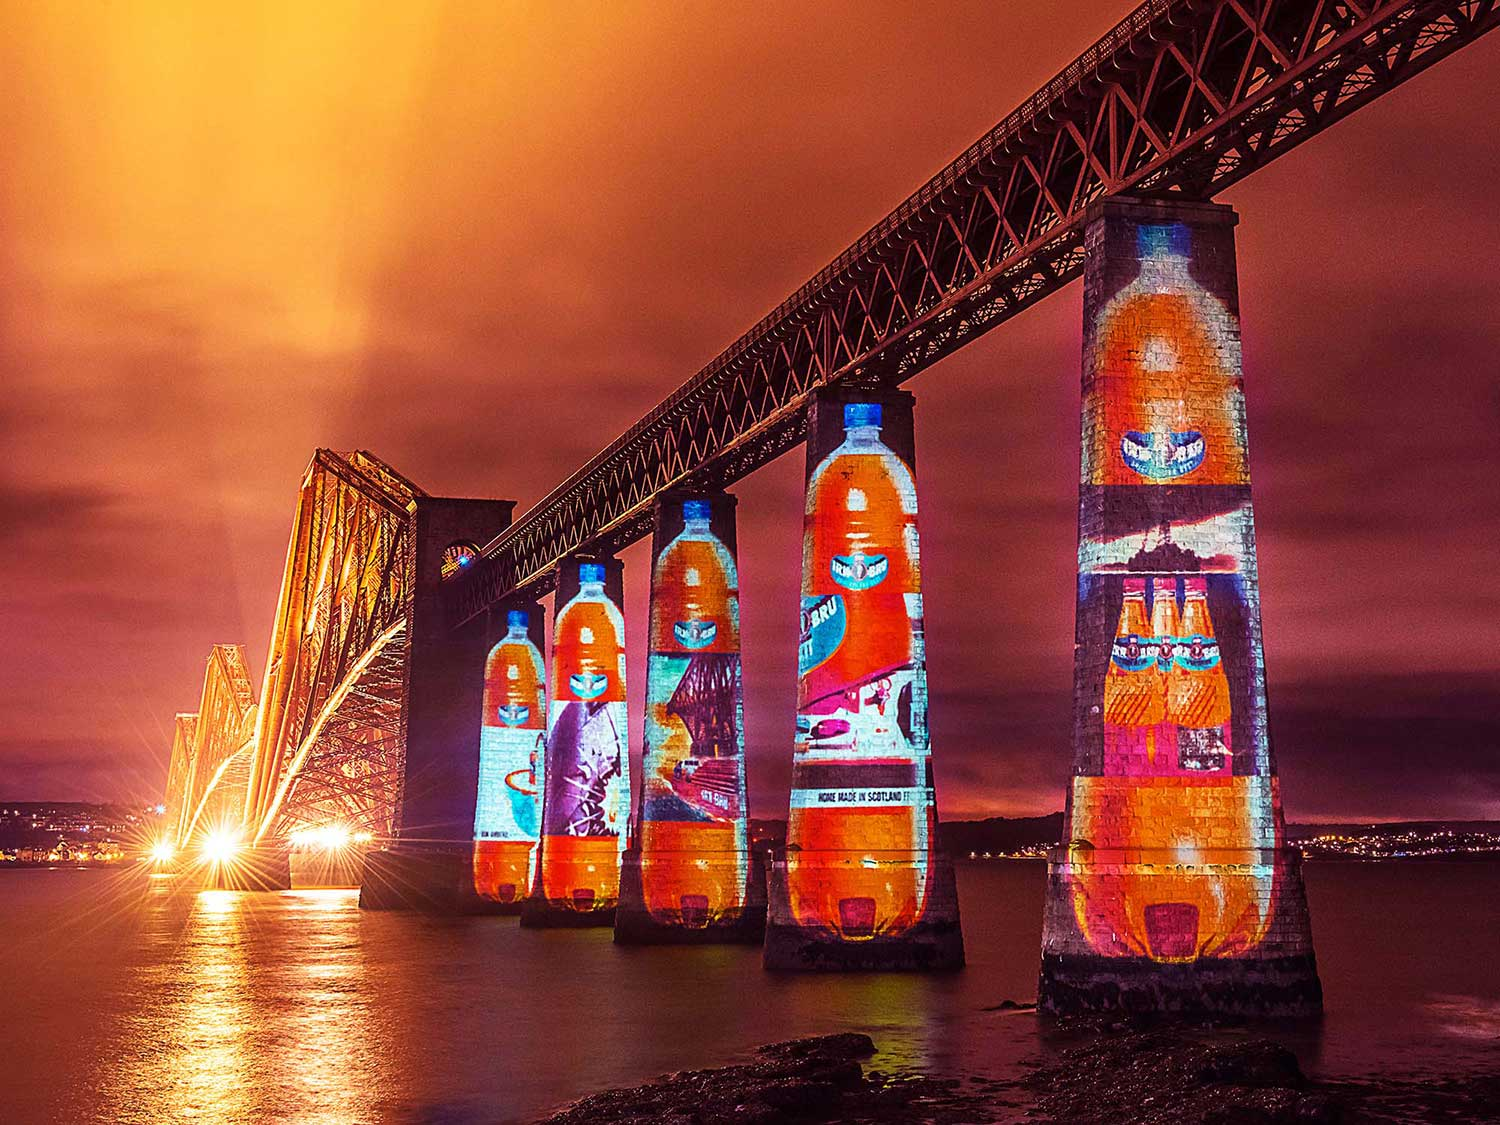 Irn Bru Guerrilla Projections, on Forth Rail Bridge Edinburgh